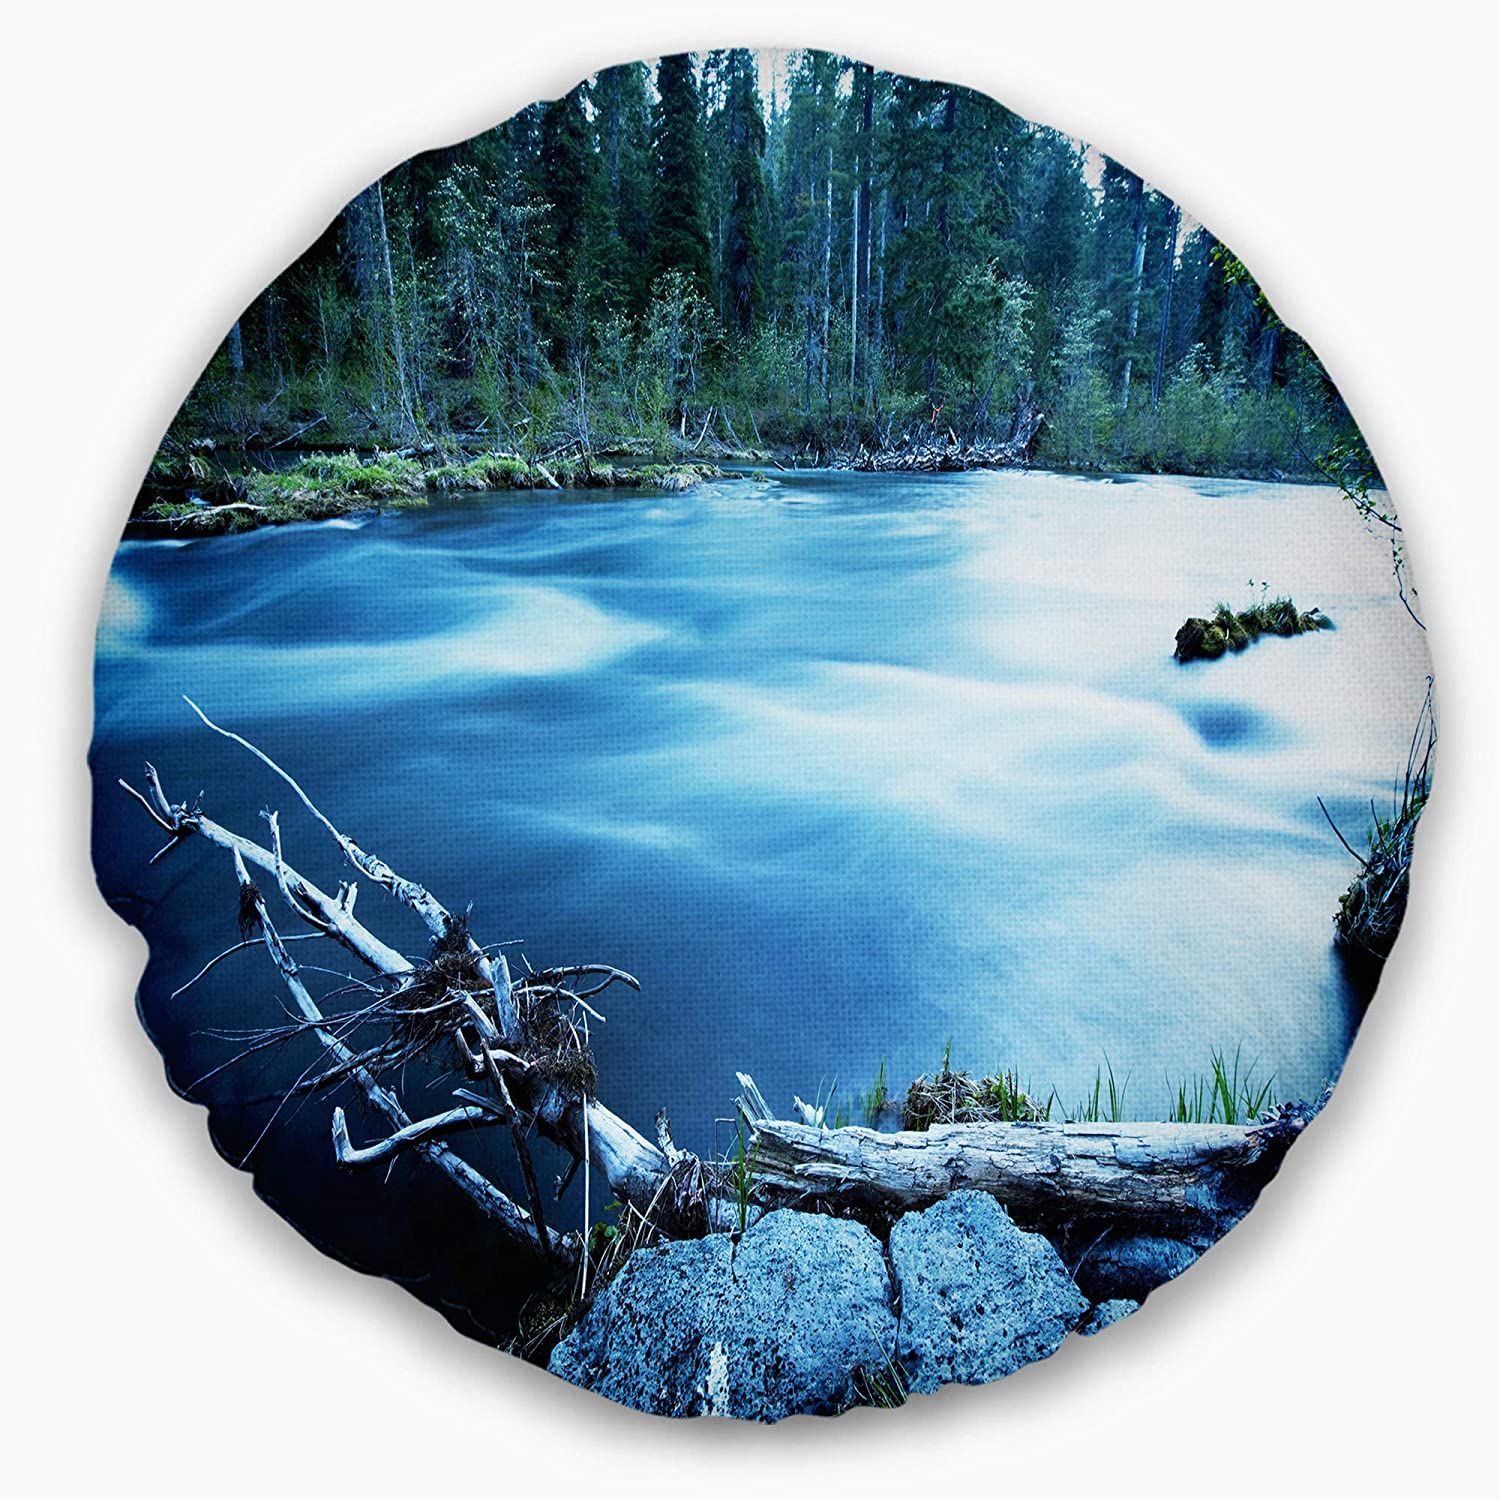 Insert Side Sofa Throw Pillow Designart CU12260-16-16-C Beautiful Blue River in Forest Landscape Printed Round Cushion Cover for Living Room 16